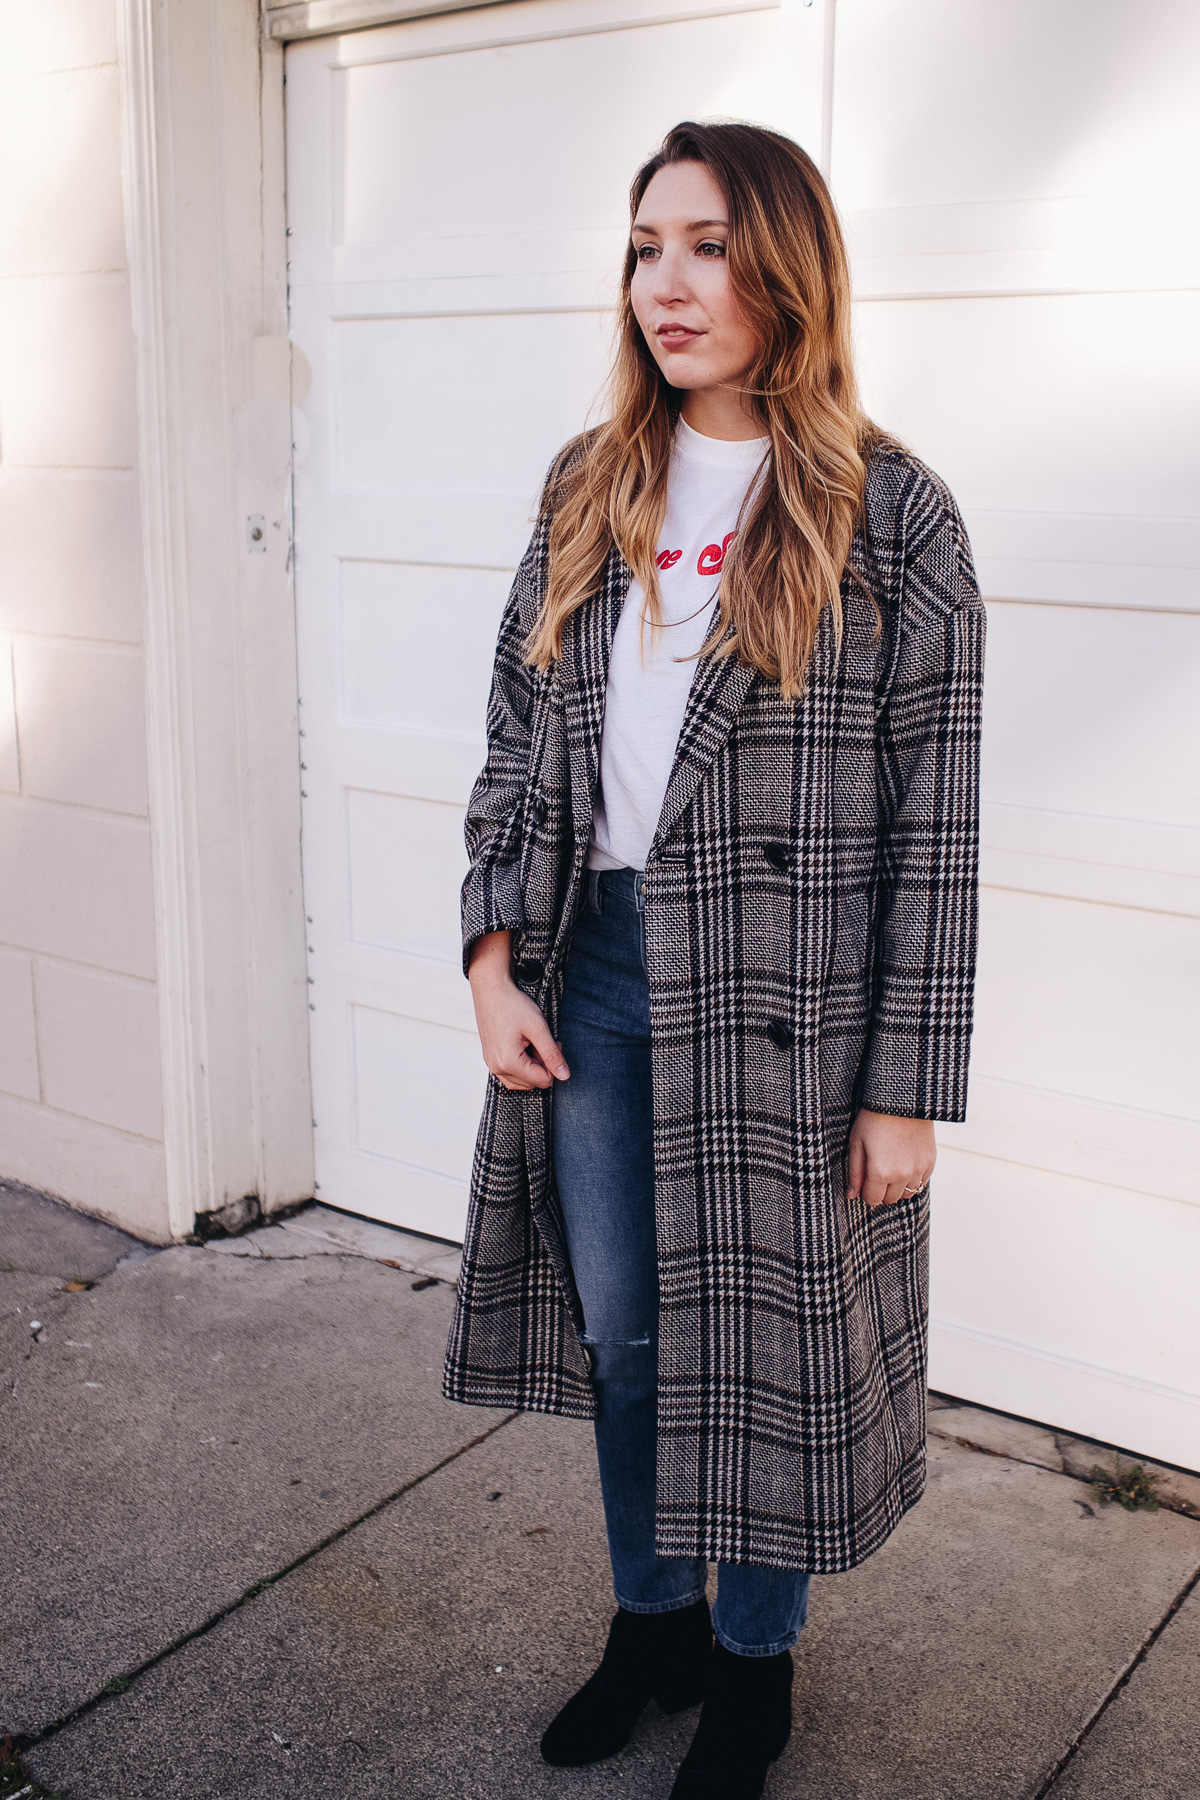 The Capsule Coat Edit | Featuring Madewell long checked coat, Ganni logo tee, Frame straight jeans and Sam Edelman black suede boots | Wolf & Stag